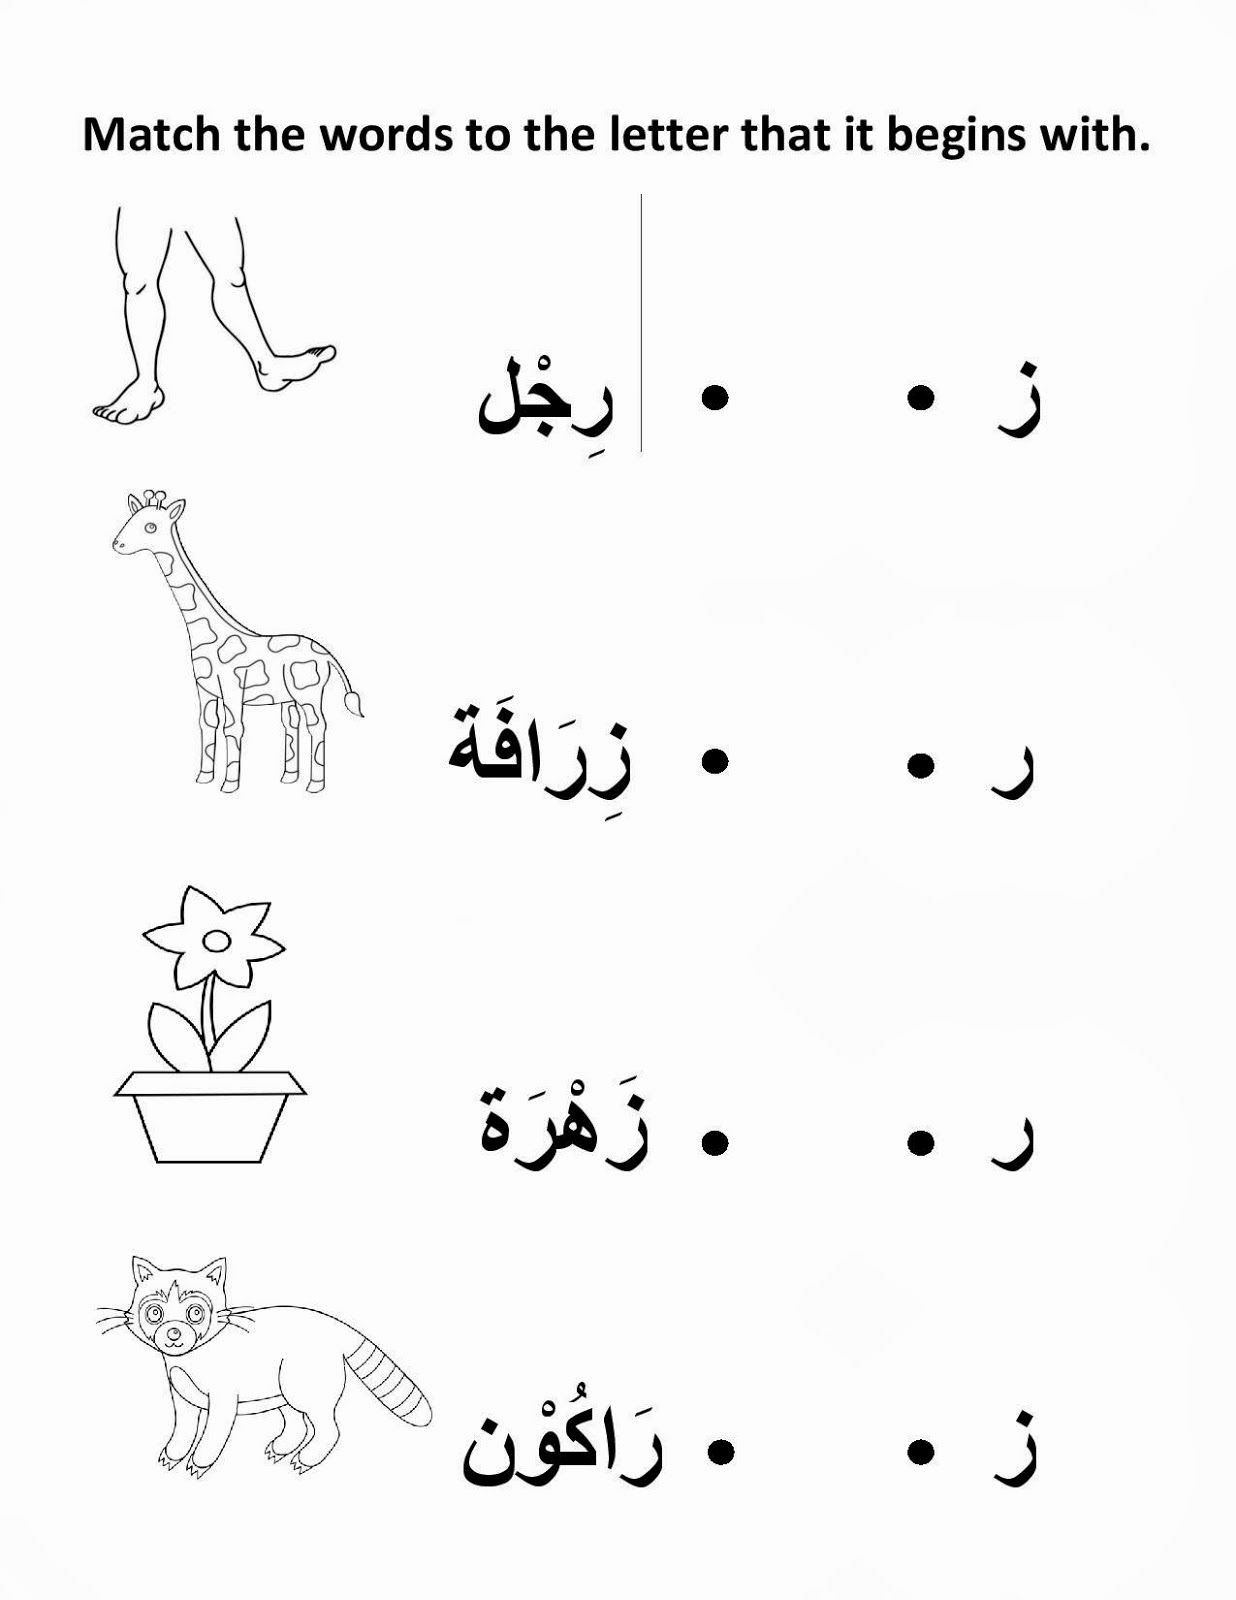 Arabic Alphabet Worksheets for Preschoolers Best Of Iqra Alif Ba Ta Worksheet for Kids 11 Oct 2013